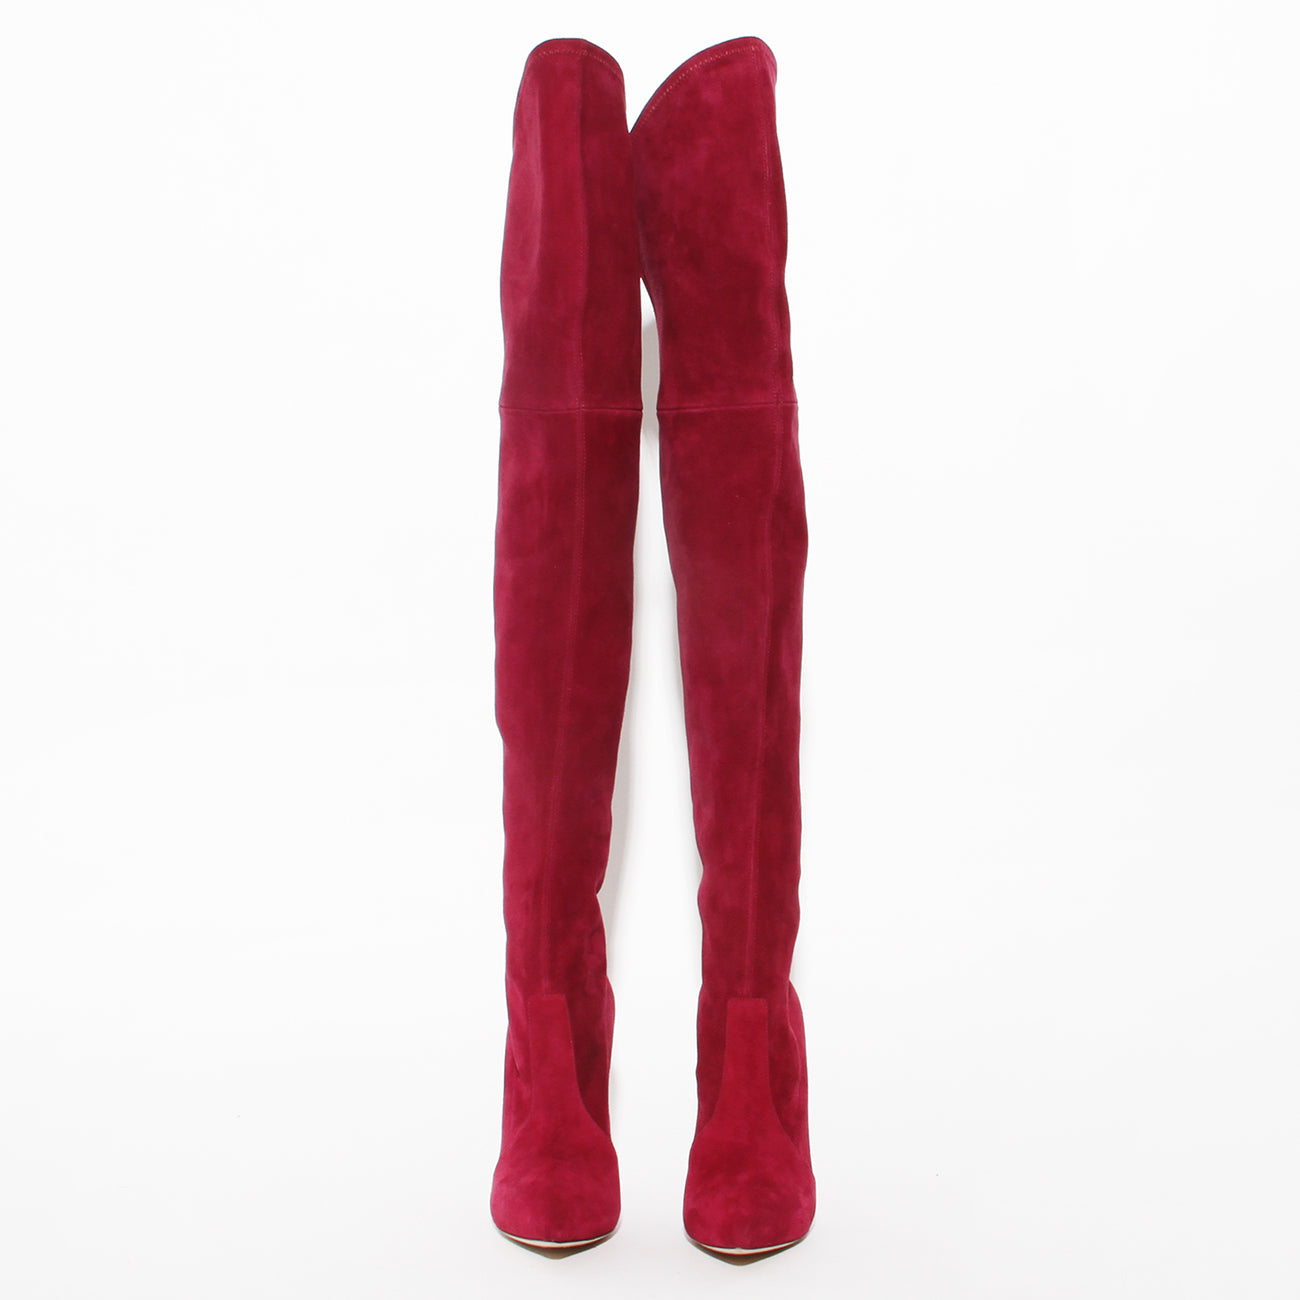 Casadei Suede Thigh High Boot